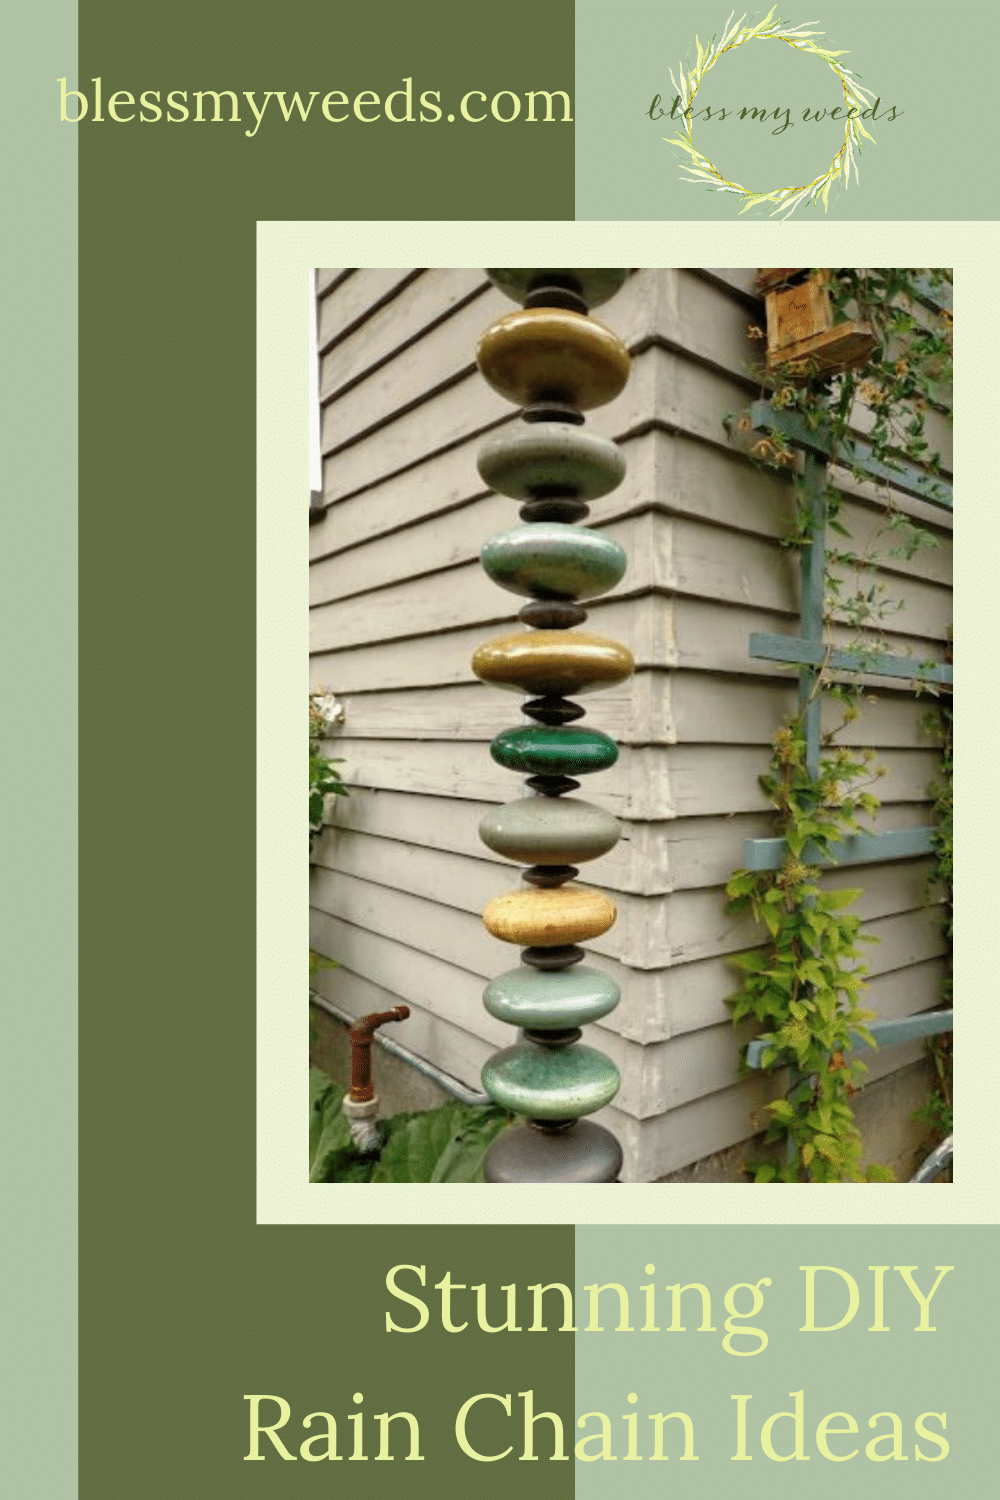 Rain chains are amazing. Both functional and beautiful, they are also very easy to make. Blessmyweeds.com can show you how. Check out these easy DIY rain chain ideas you can start making today. Keep reading to learn more.